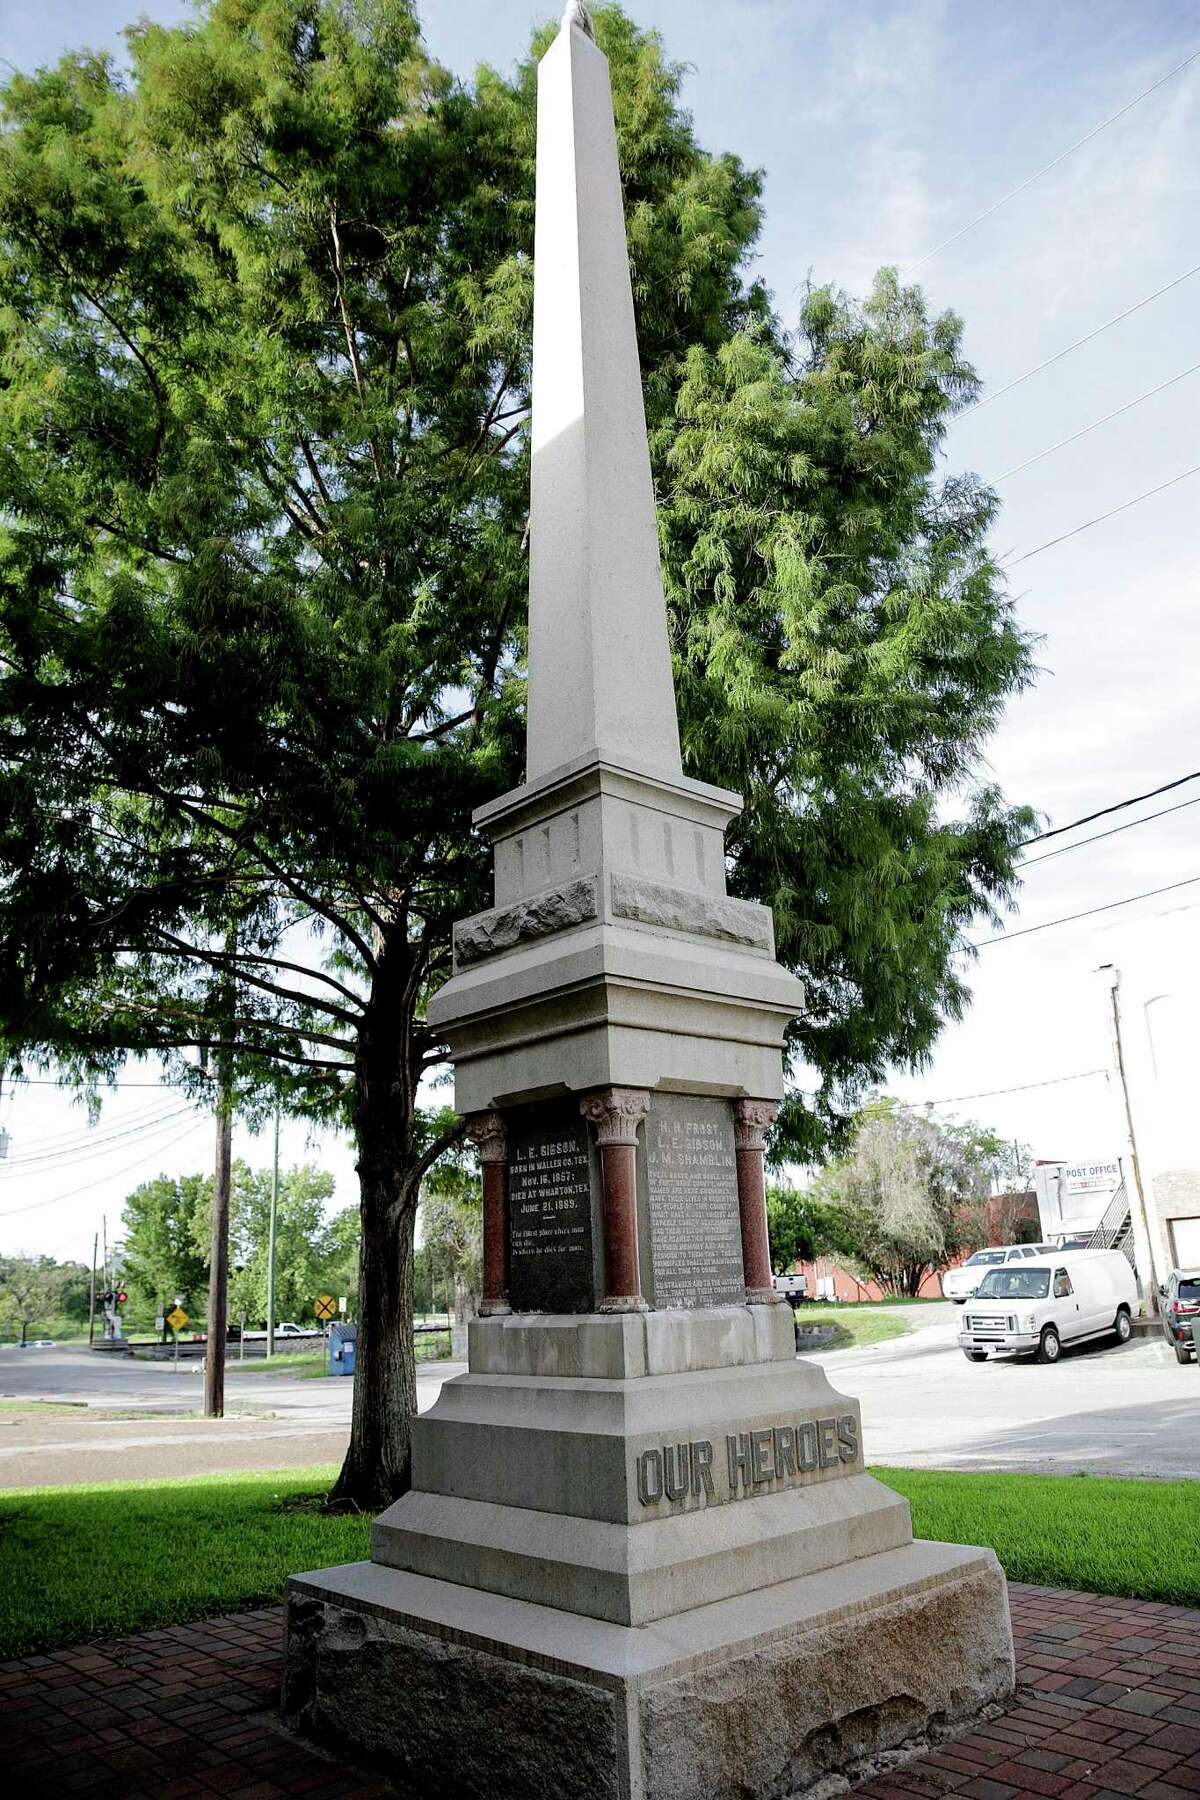 A monument in downtown Richmond honors three members of the whites-only Jaybird Party who died in a clash with members of the Woodpecker Party during the late 19th Century. Photos in downtown Richmond, Texas, on Wednesday, Aug. 16, 2017